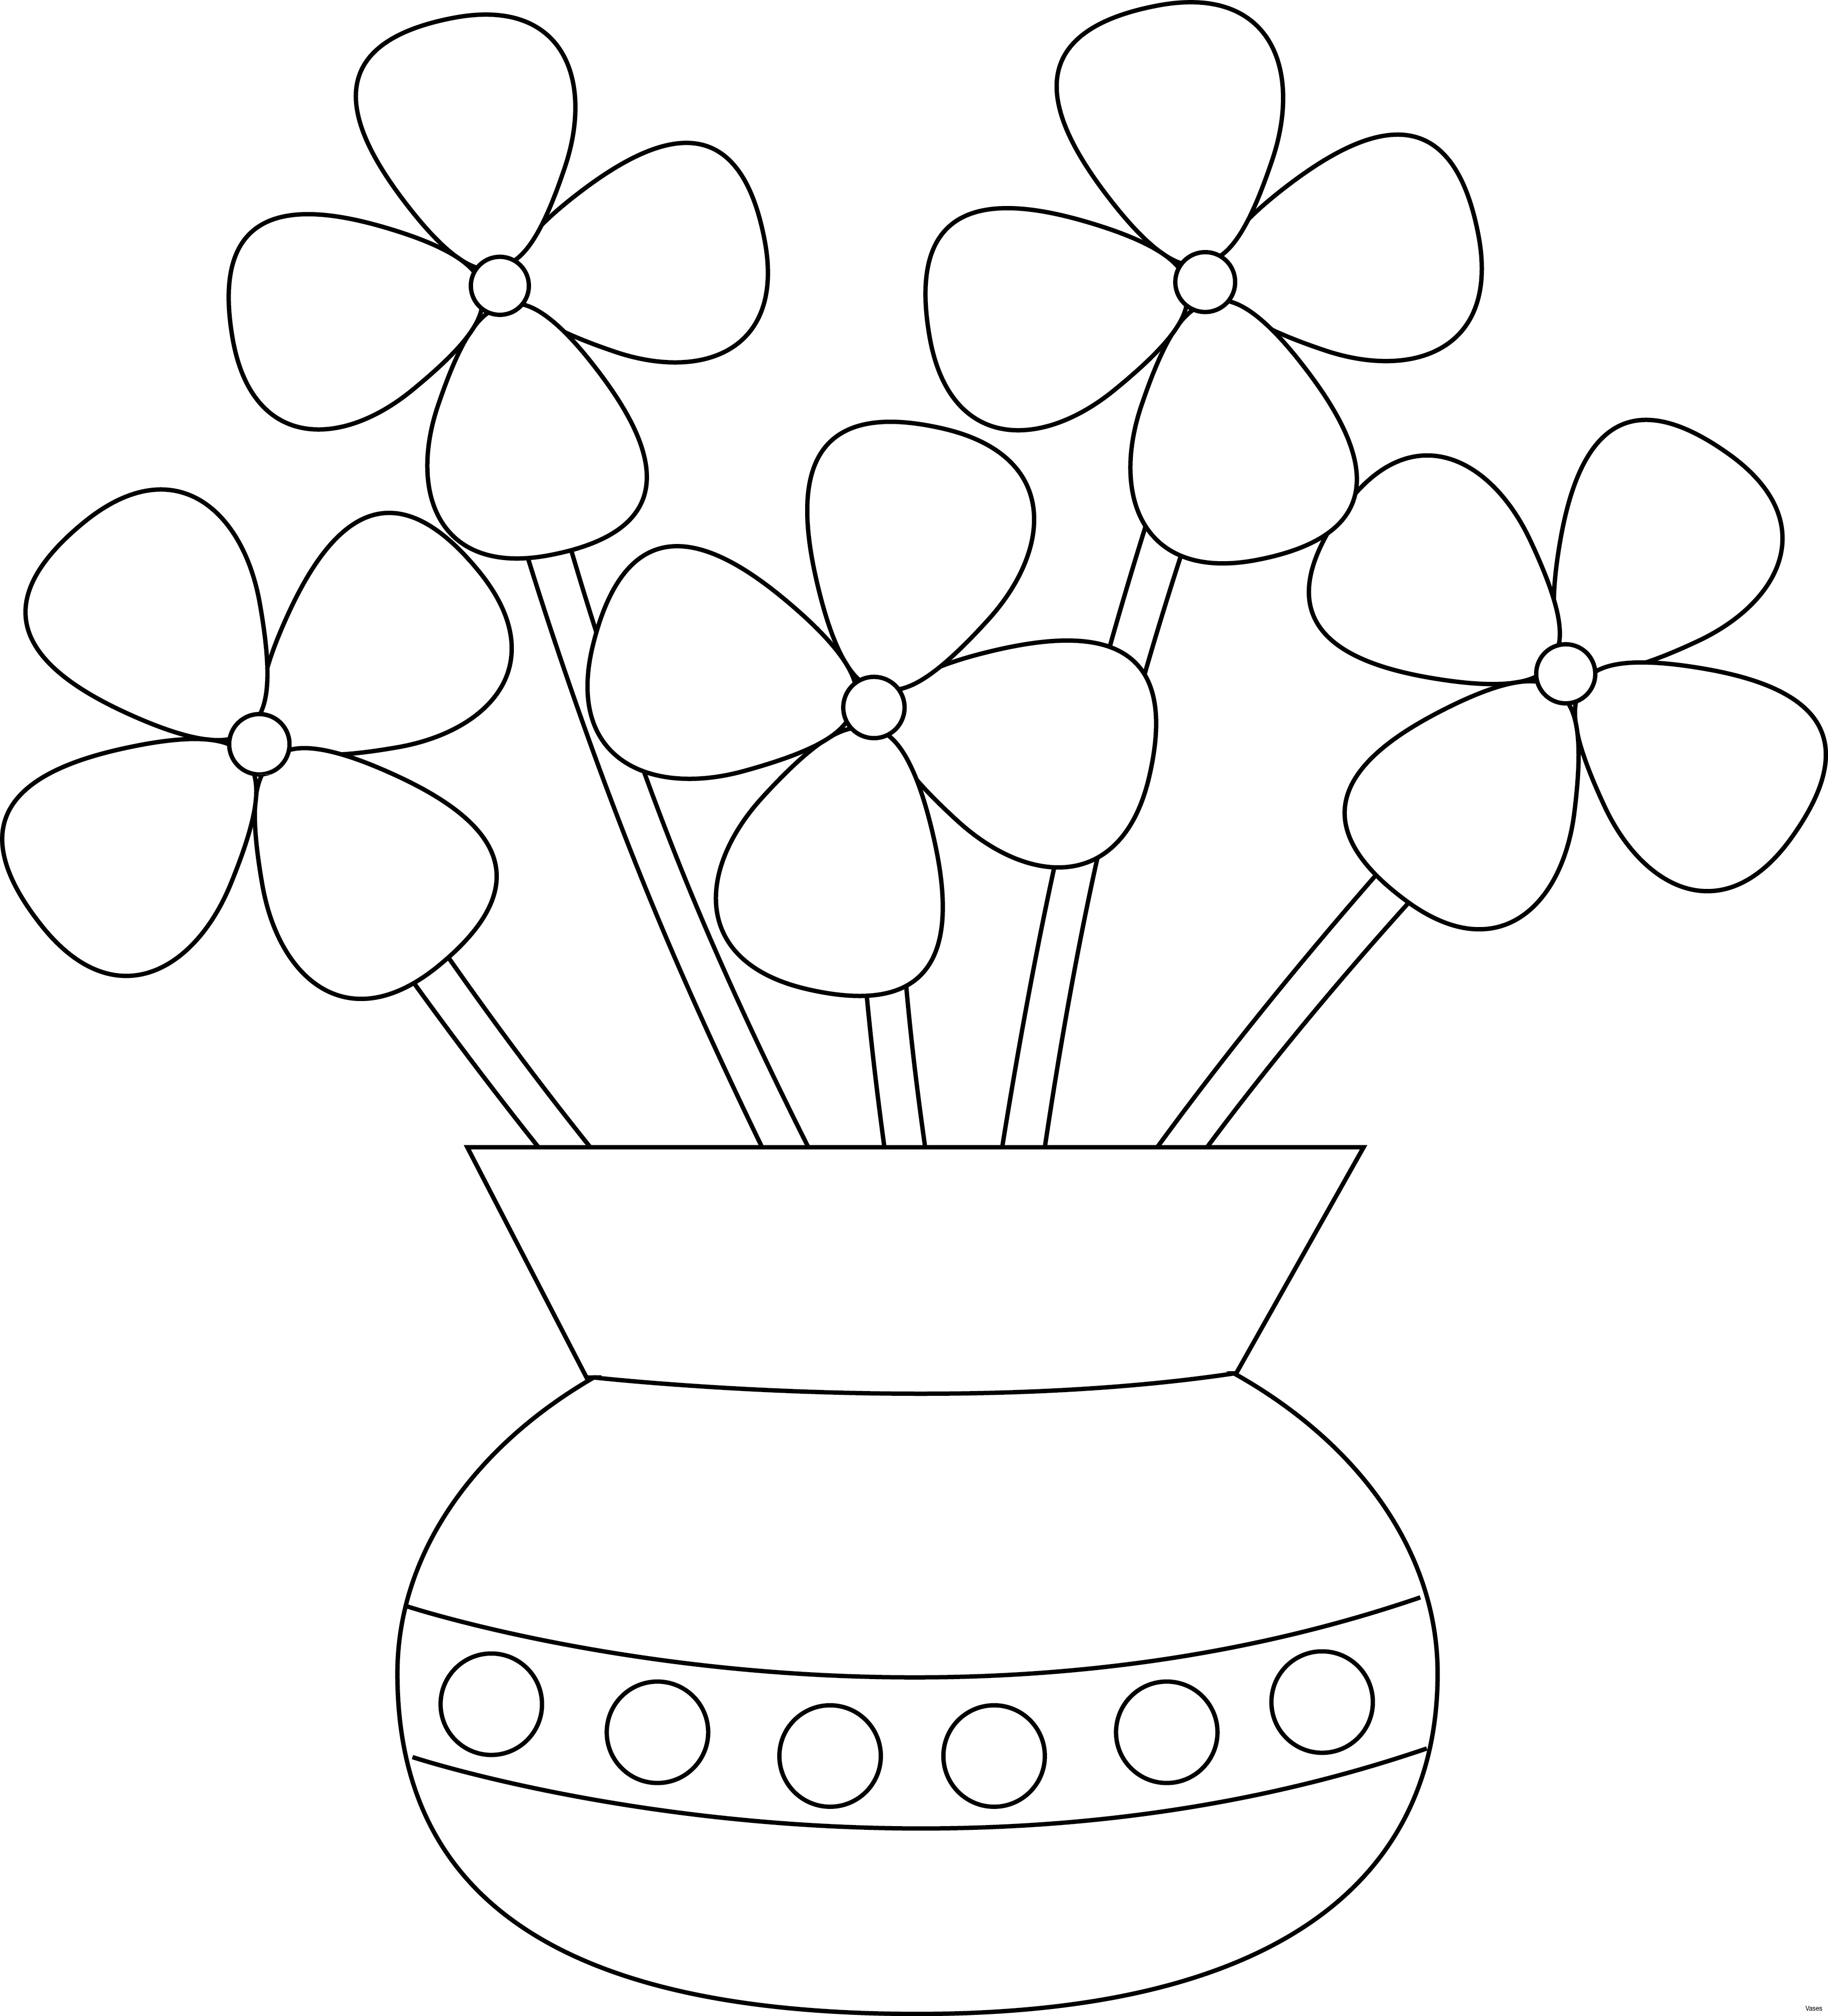 3408x3758 How To Draw A Beautiful Flower Vase Image With For Drawing